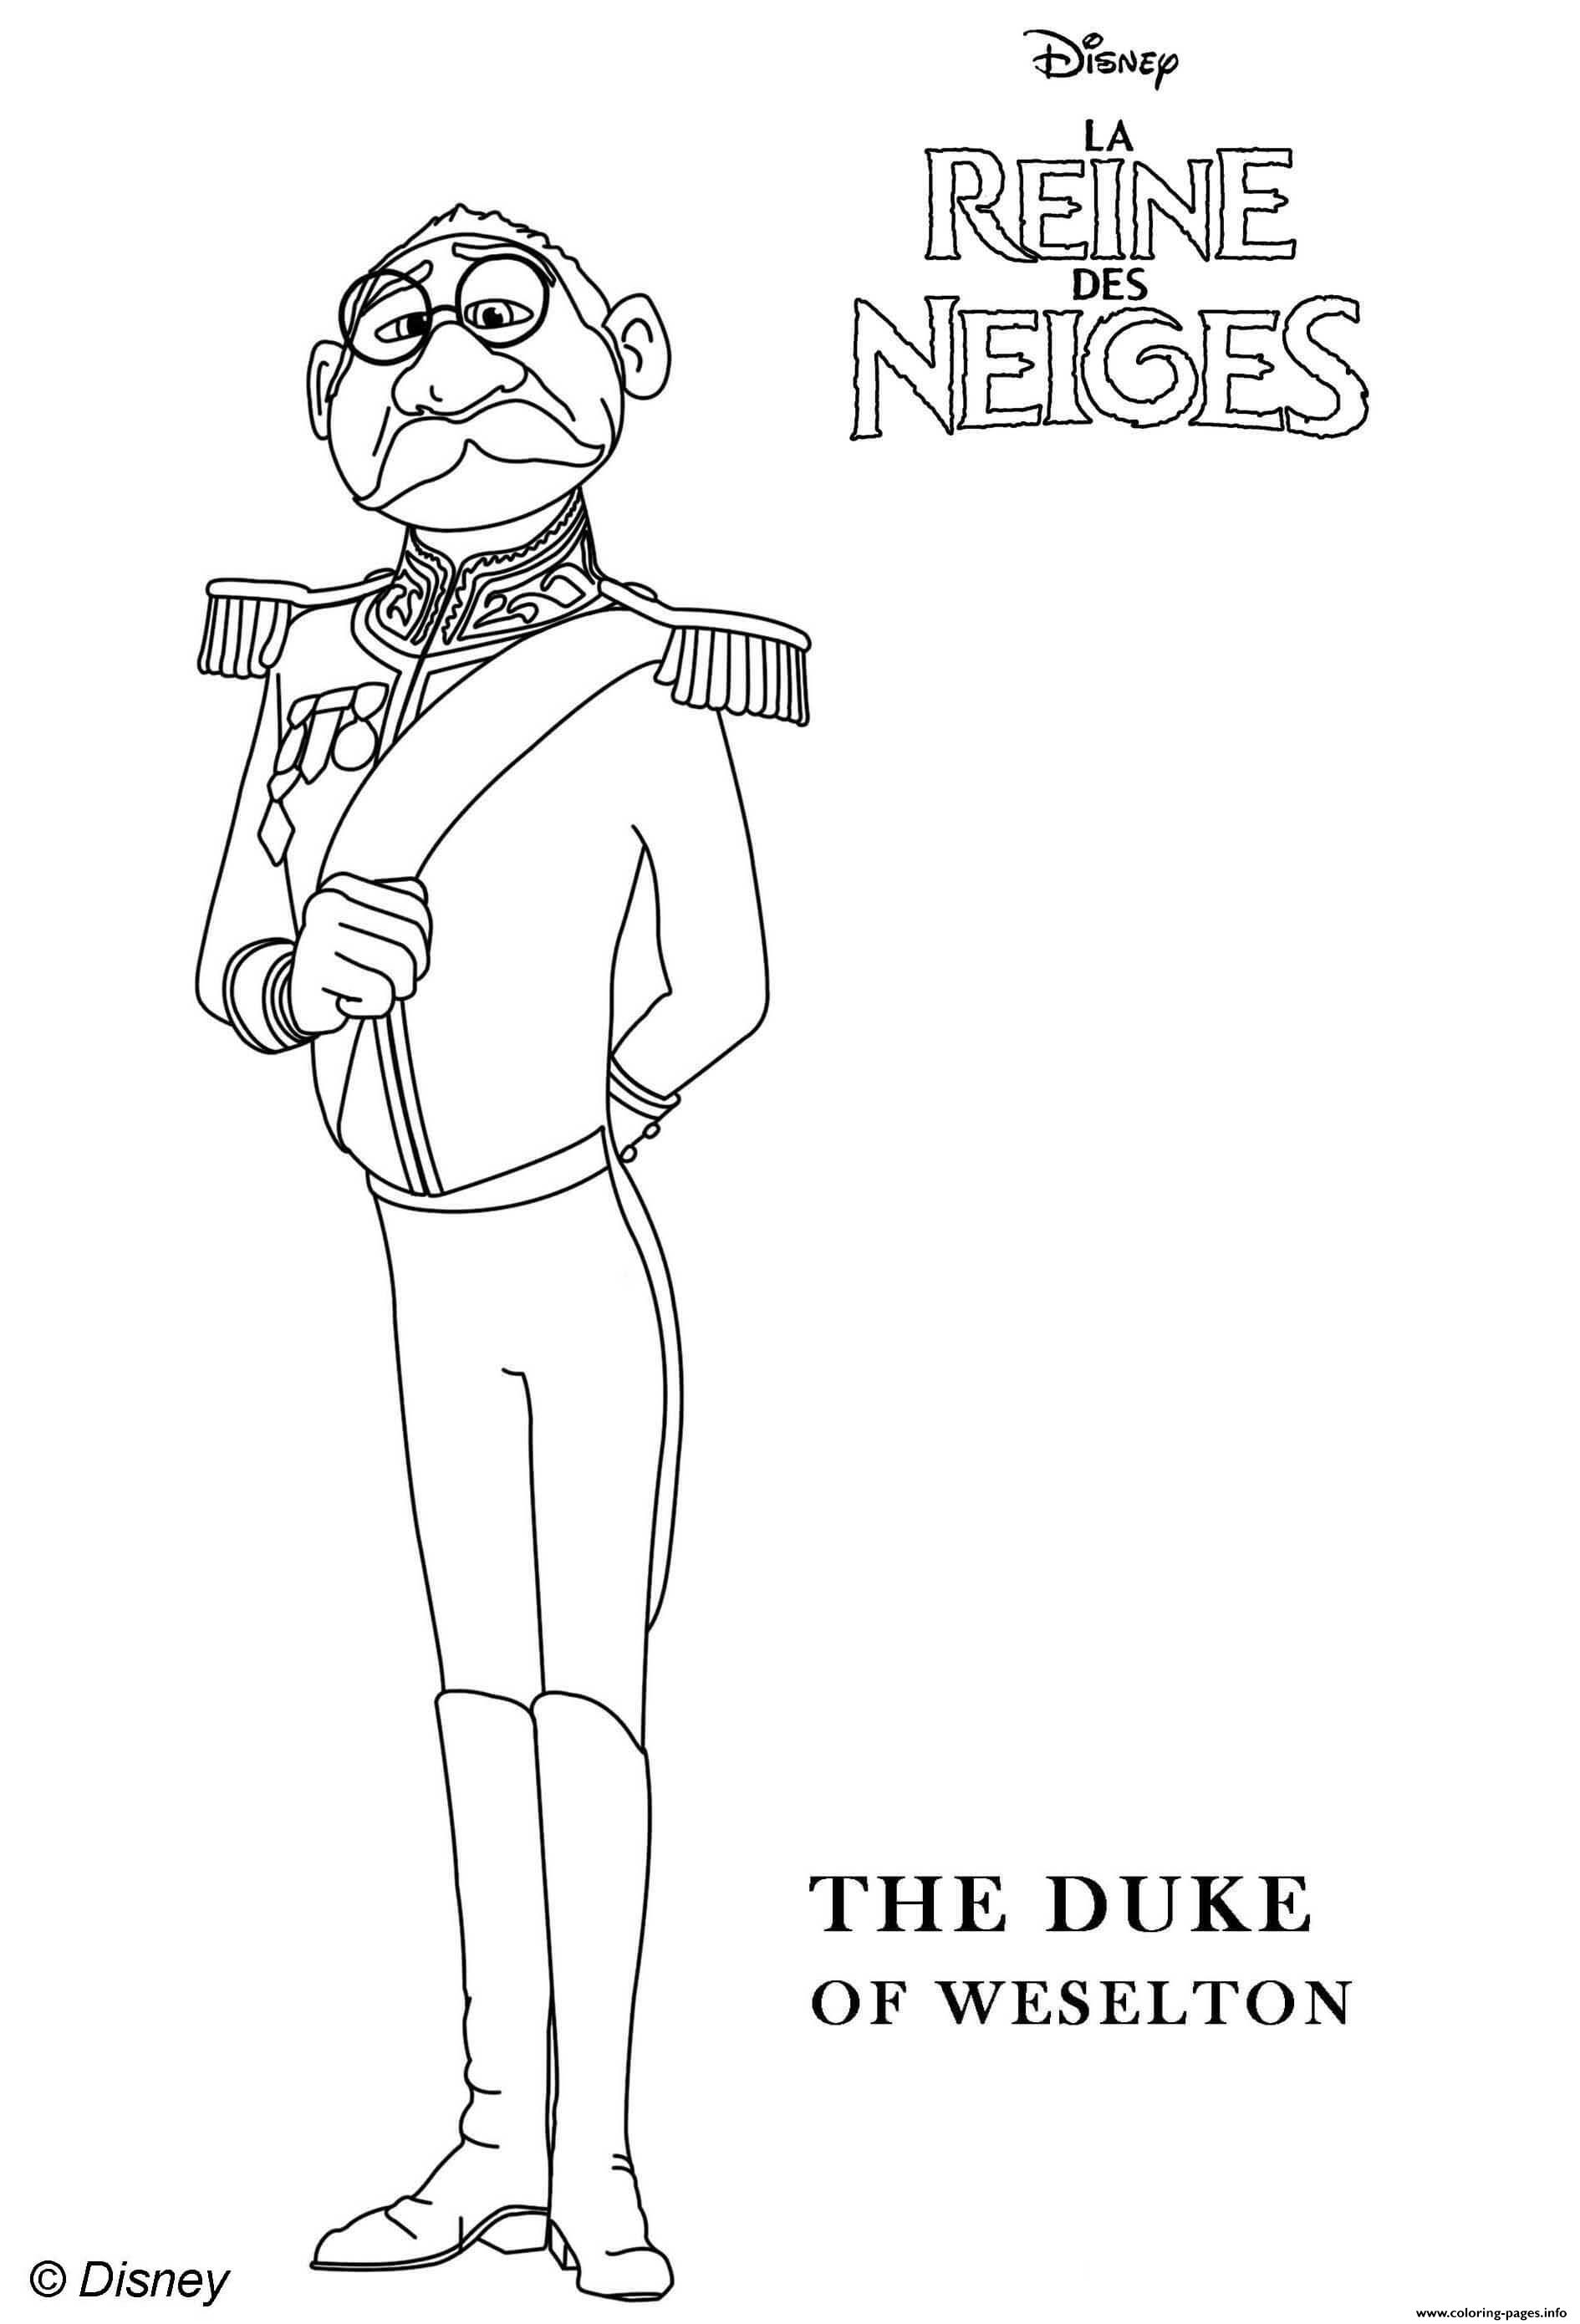 Duke Of Weselton From Frozen 2 Coloring Pages Printable